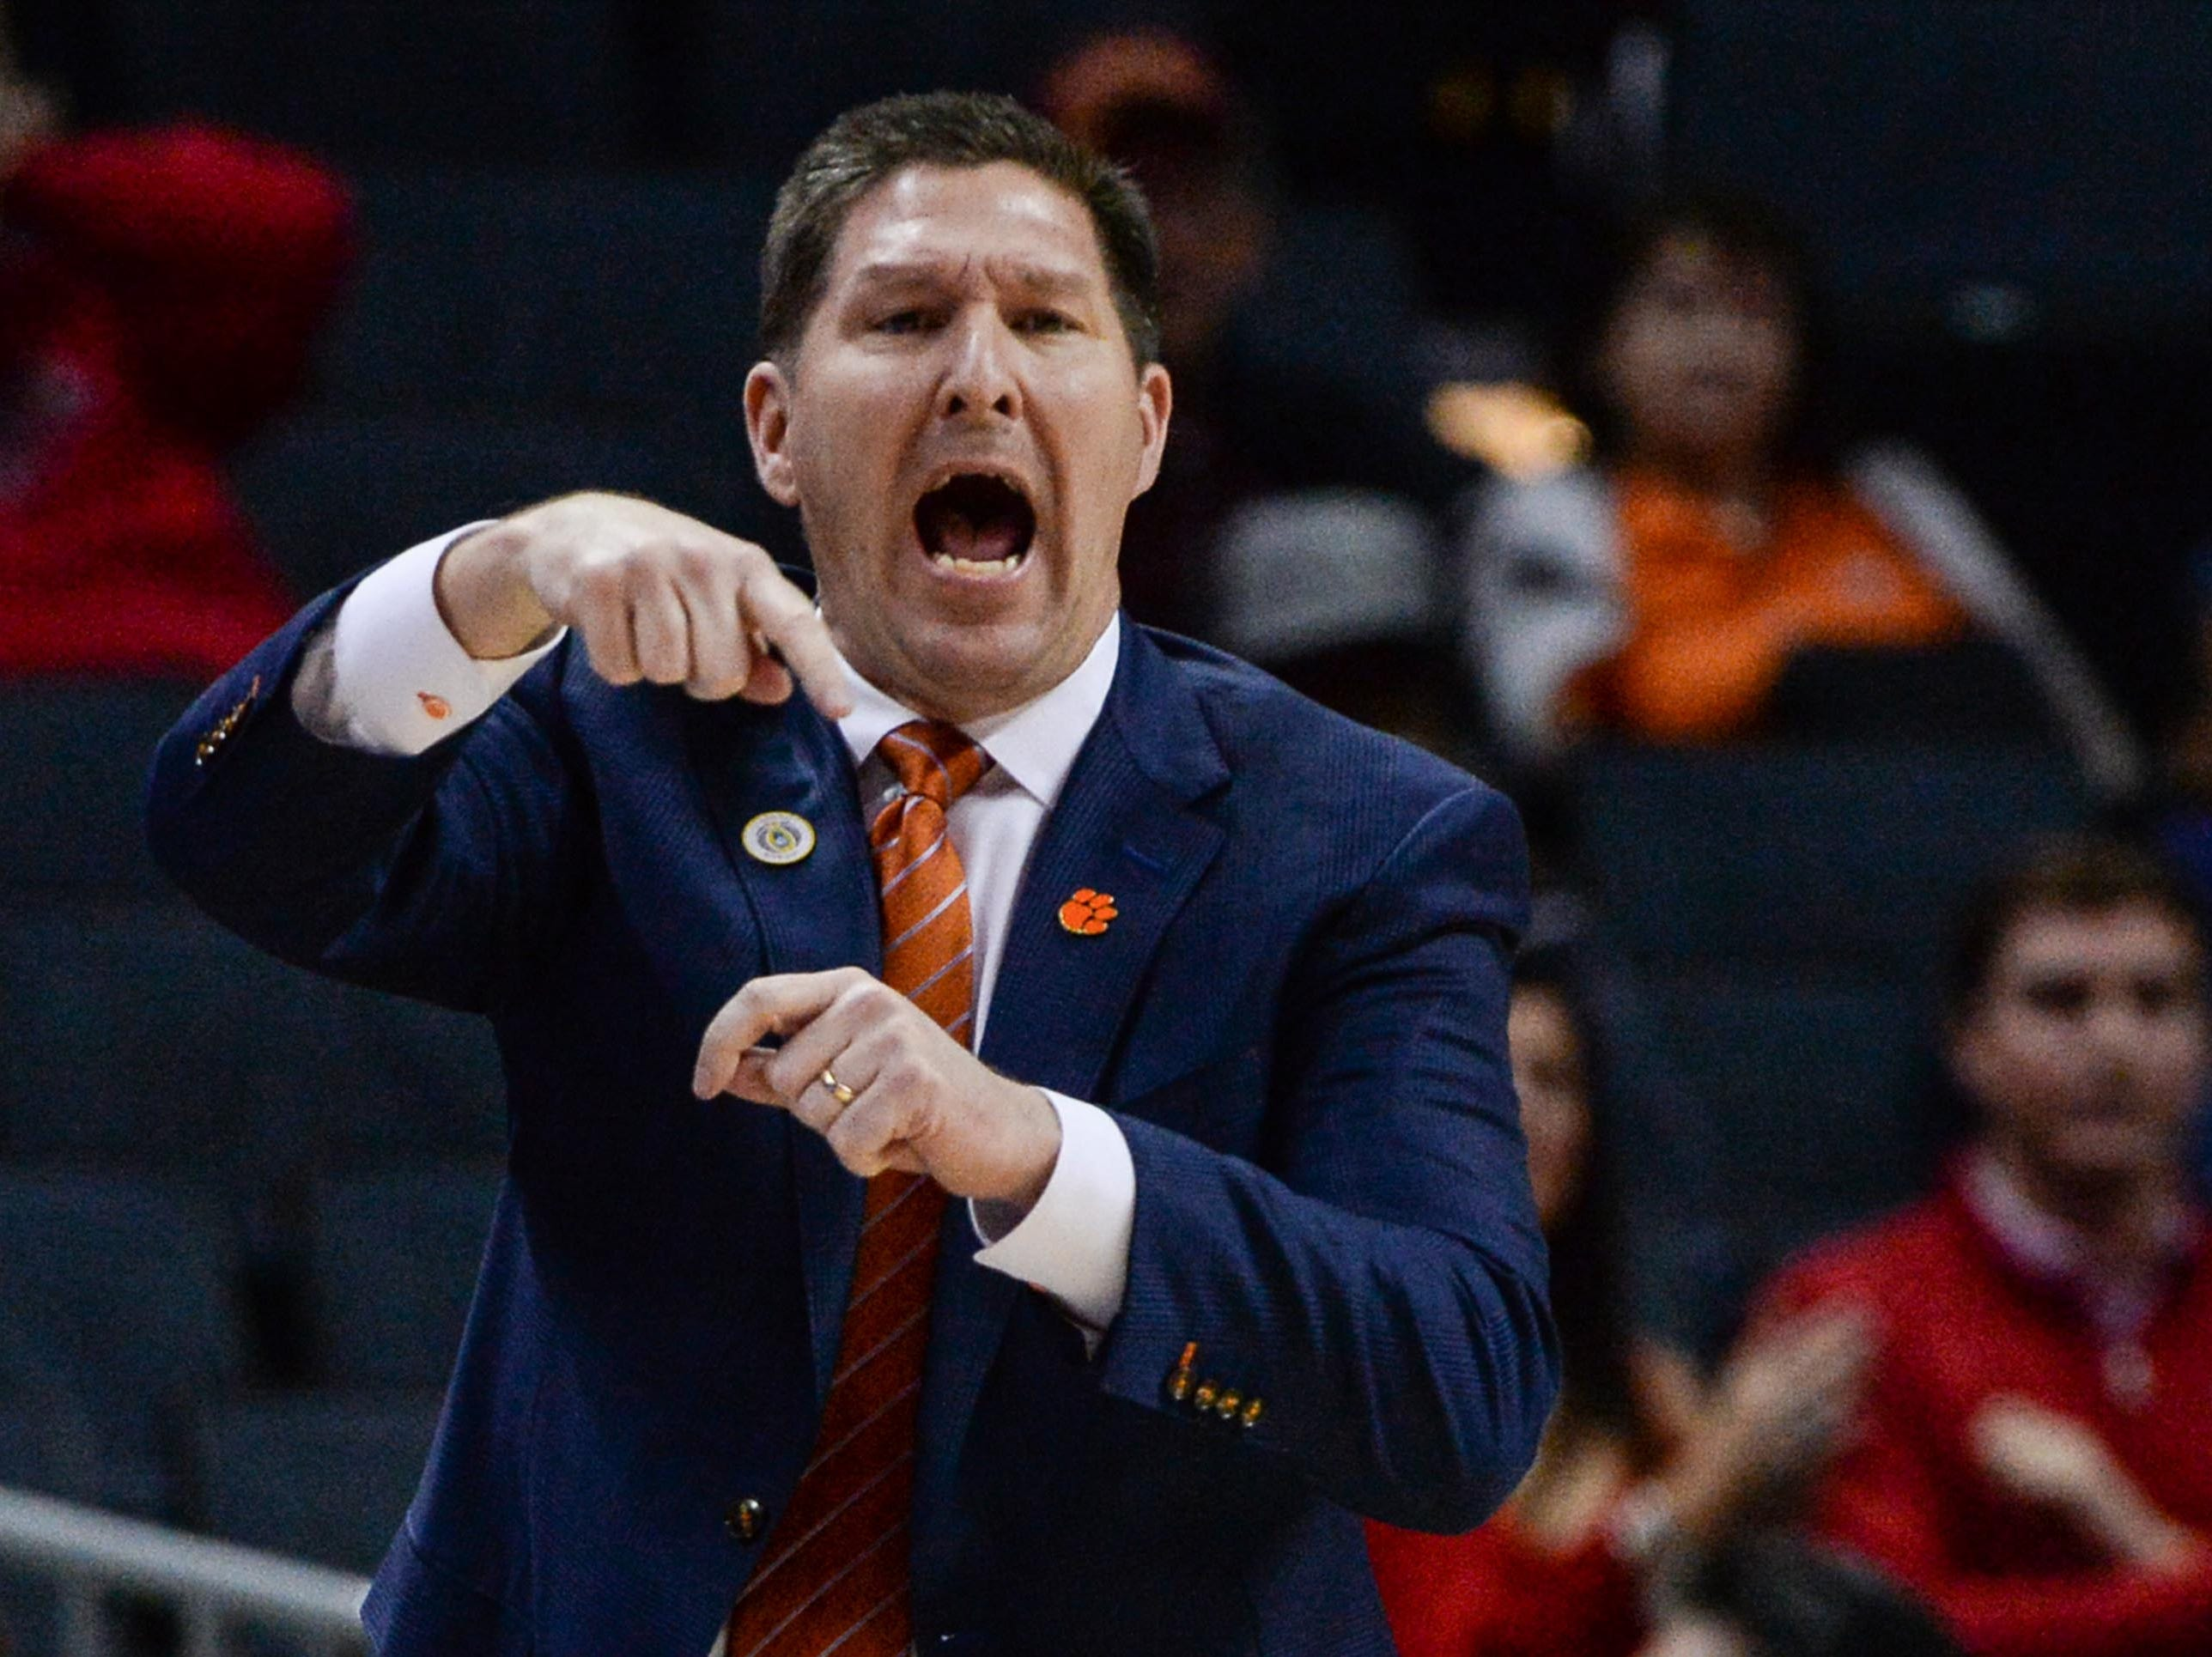 Clemson head coach Brad Brownell  communicates with his team playing N.C. State during the first half at the Spectrum Center in Charlotte, N.C. Tuesday, March 12, 2019.